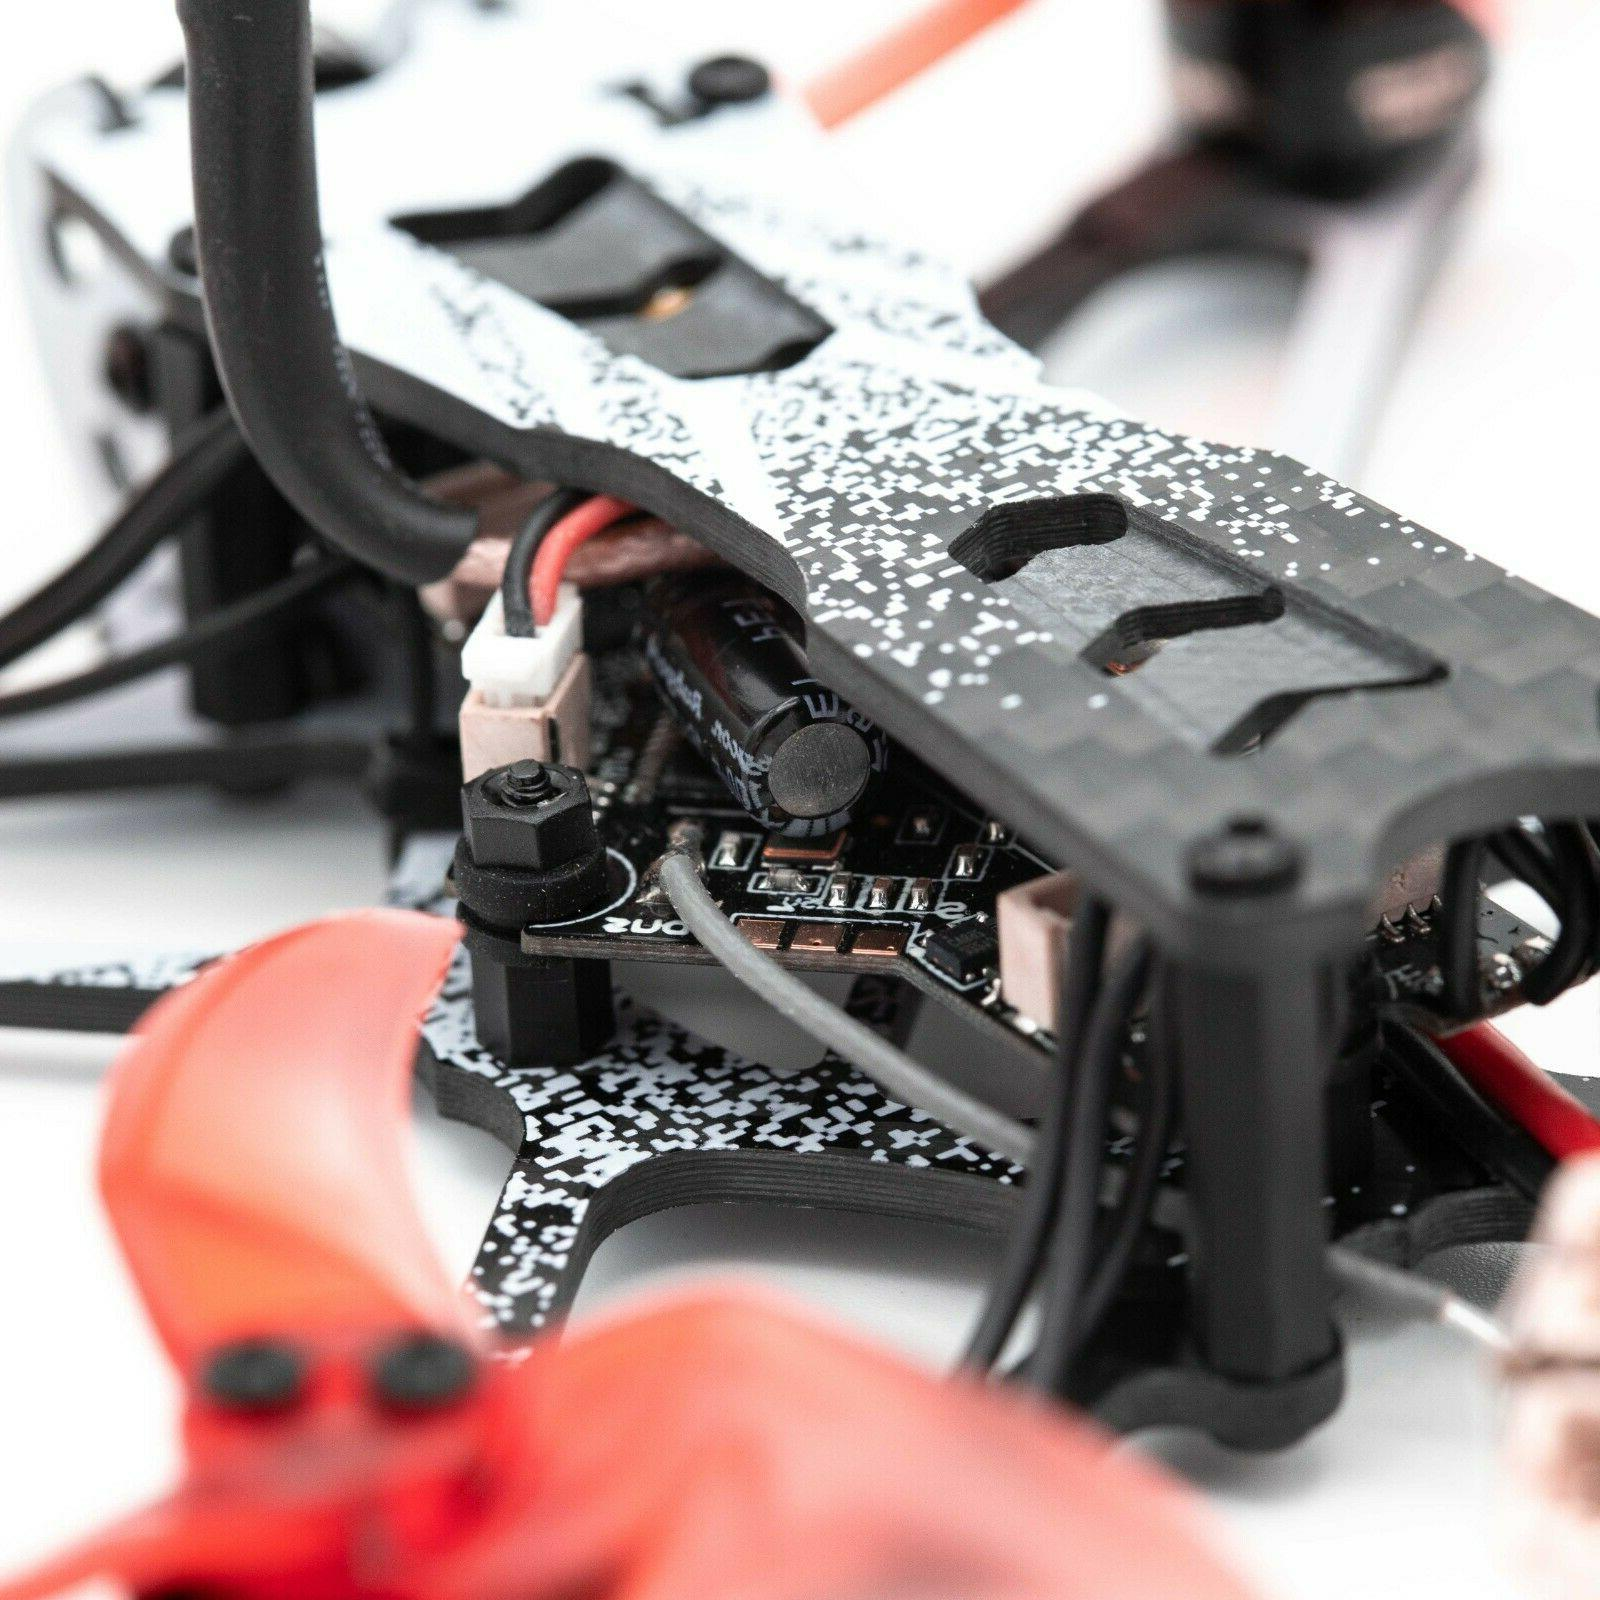 Tinyhawk Kit Drone with Goggles beginners